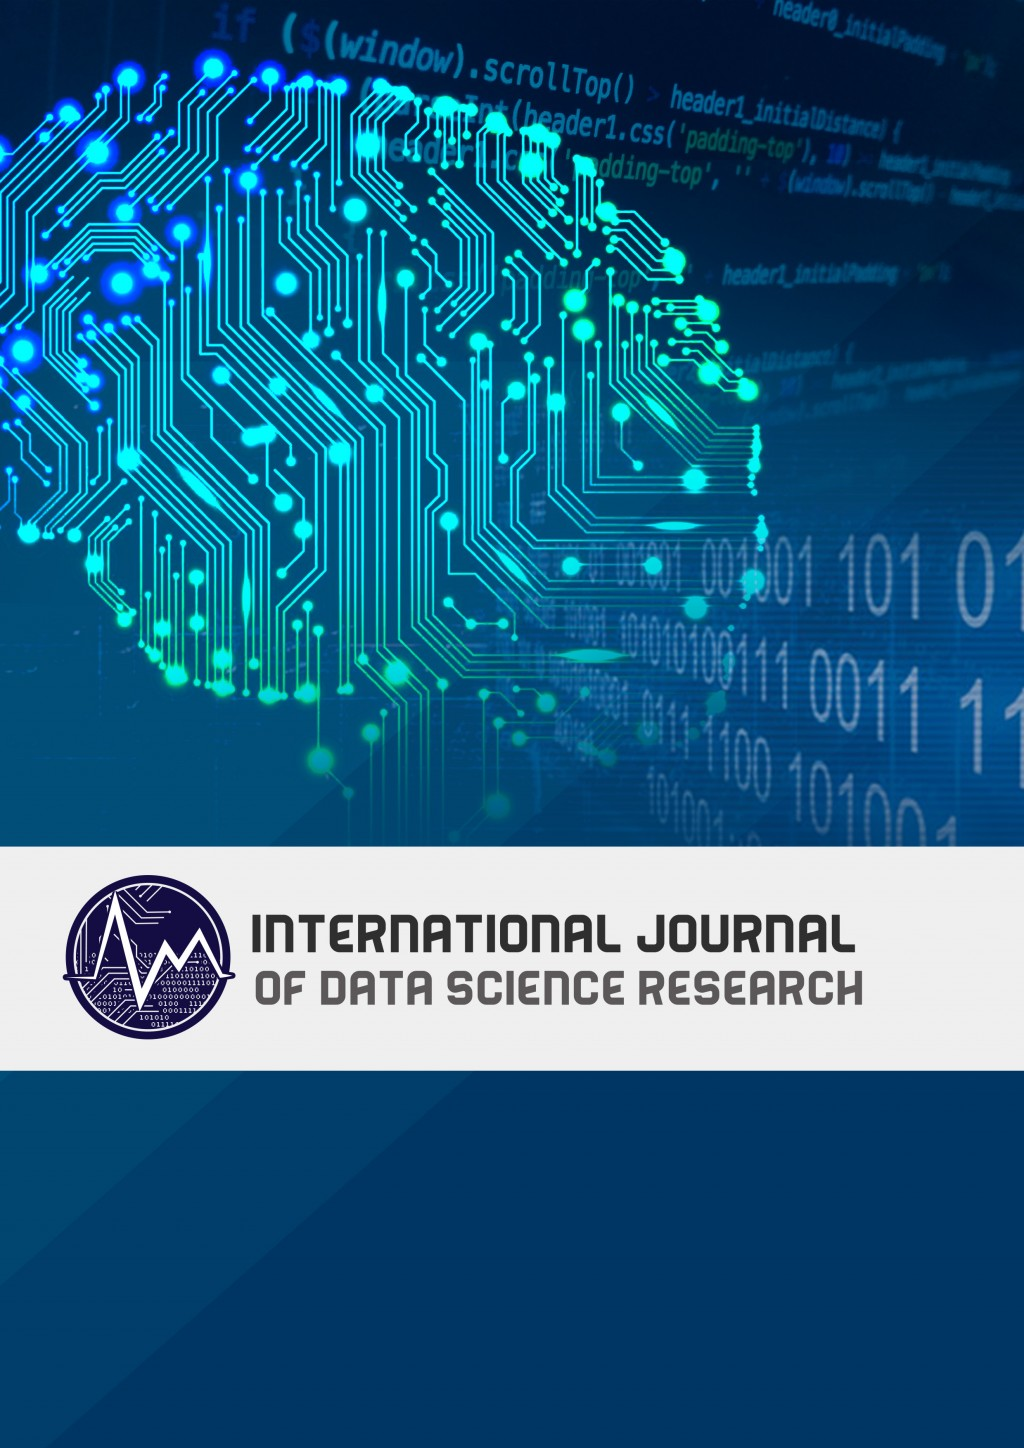 017 Research Paper Cover Issue 58 En Us Data Science Papers Sensational Pdf 2018 Large